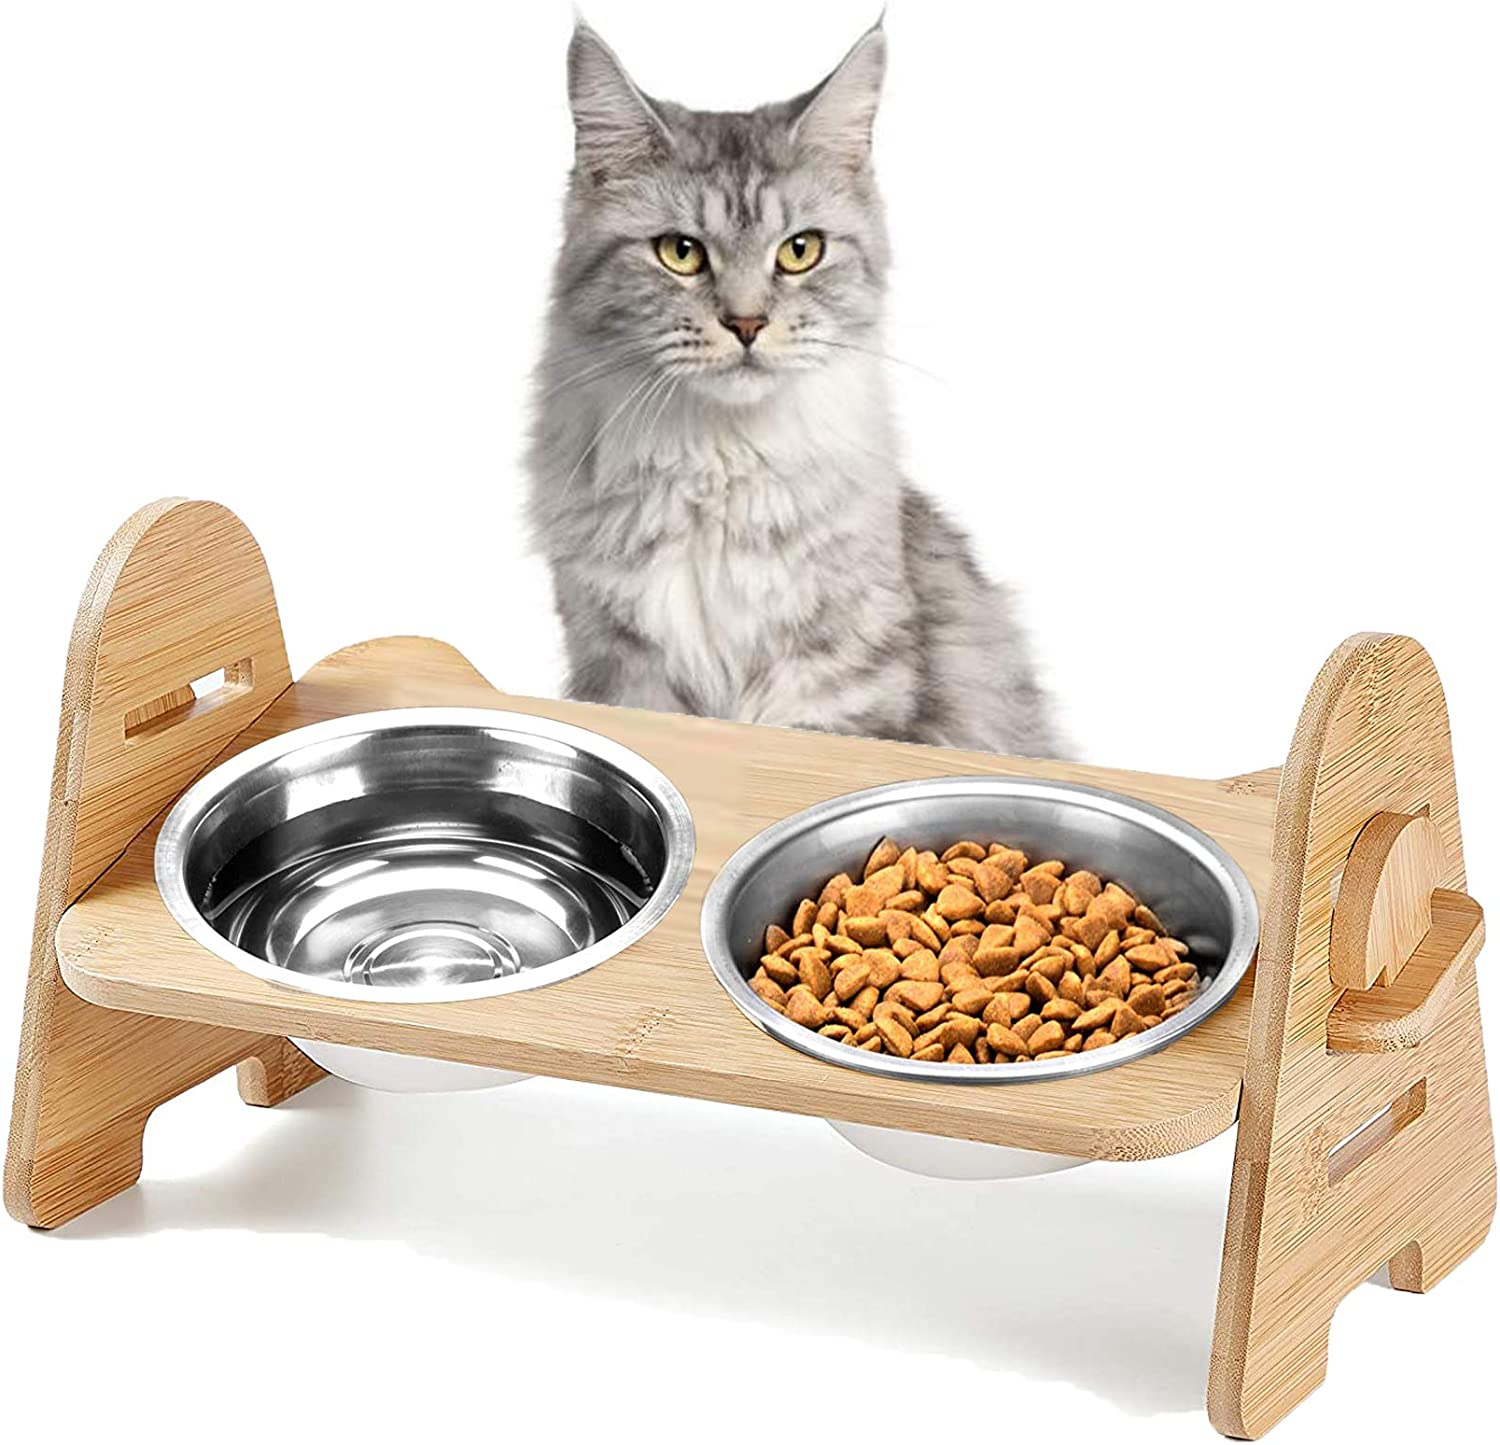 Height-Adjustable Cat Bowl,Solid Bamboo Frame Raised Cat Food Bowls Anti Vomiting,Tilted Elevated Cat Bowl,Stainless Steel Pet Food Bowl for Flat-Faced Cats,Small Dogs,Protect Pet's Spine